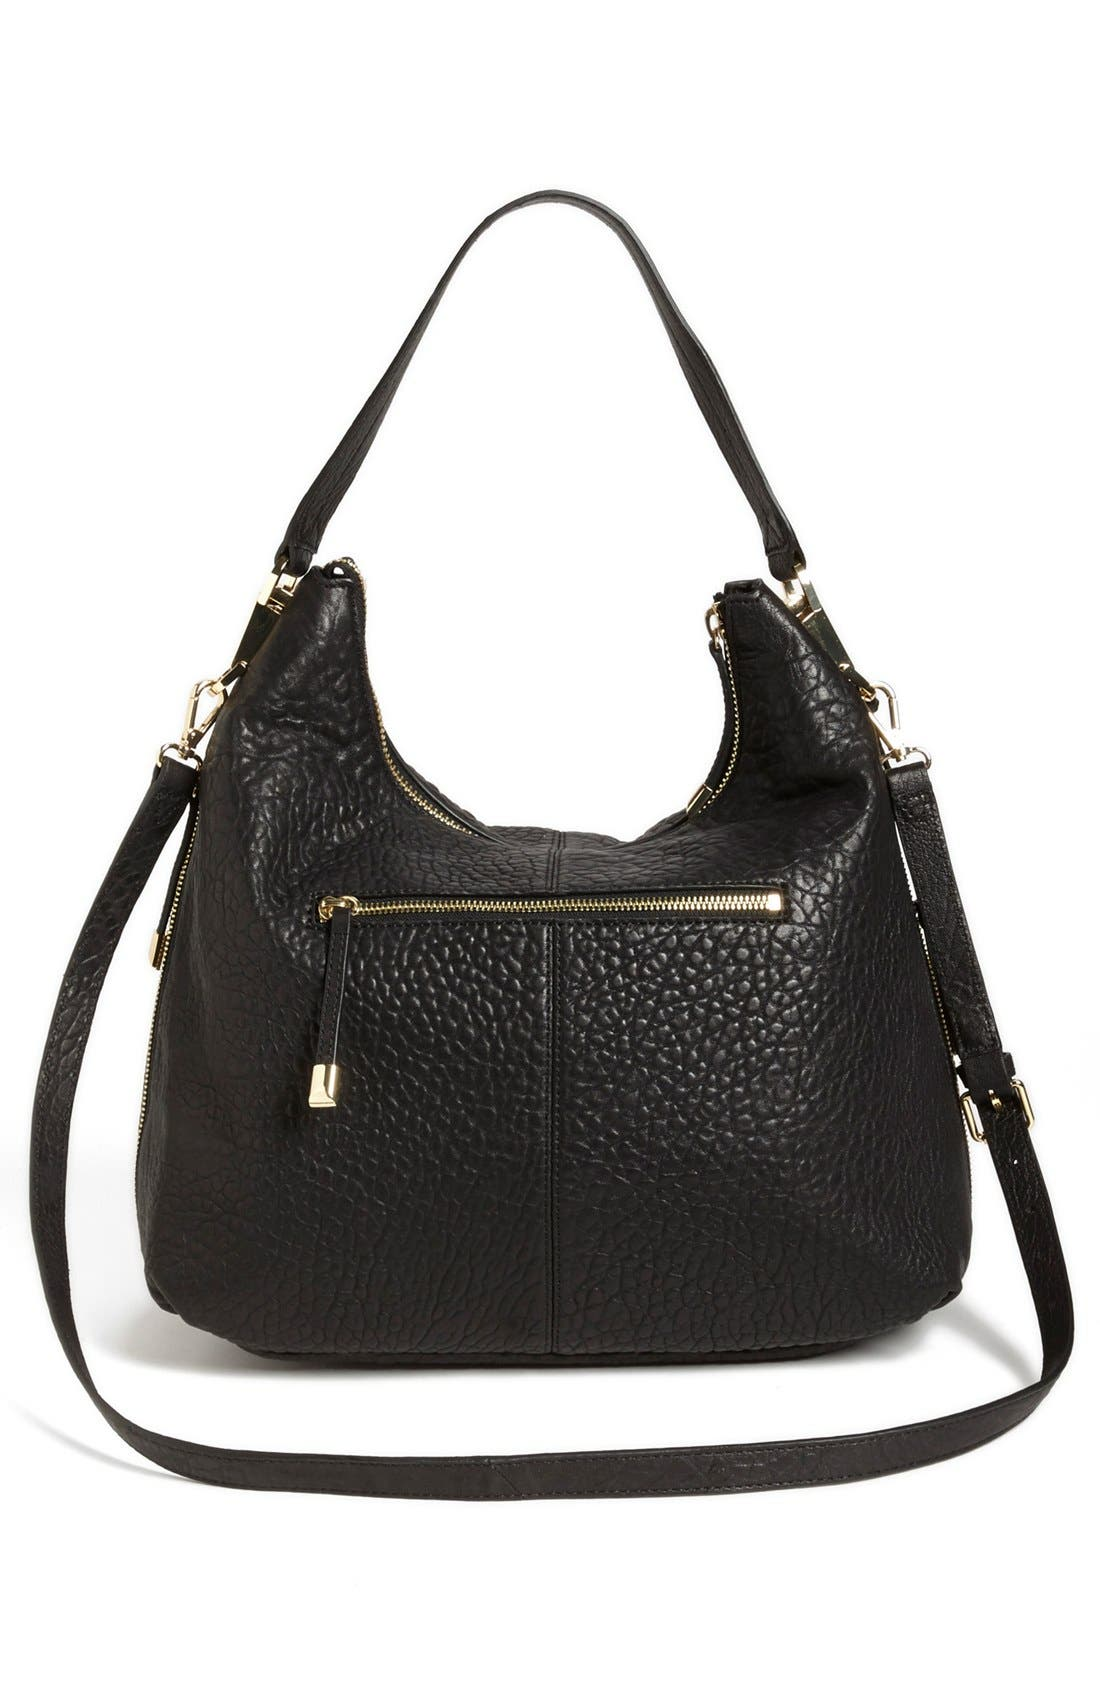 VINCE CAMUTO,                             'Riley' Hobo,                             Alternate thumbnail 4, color,                             001